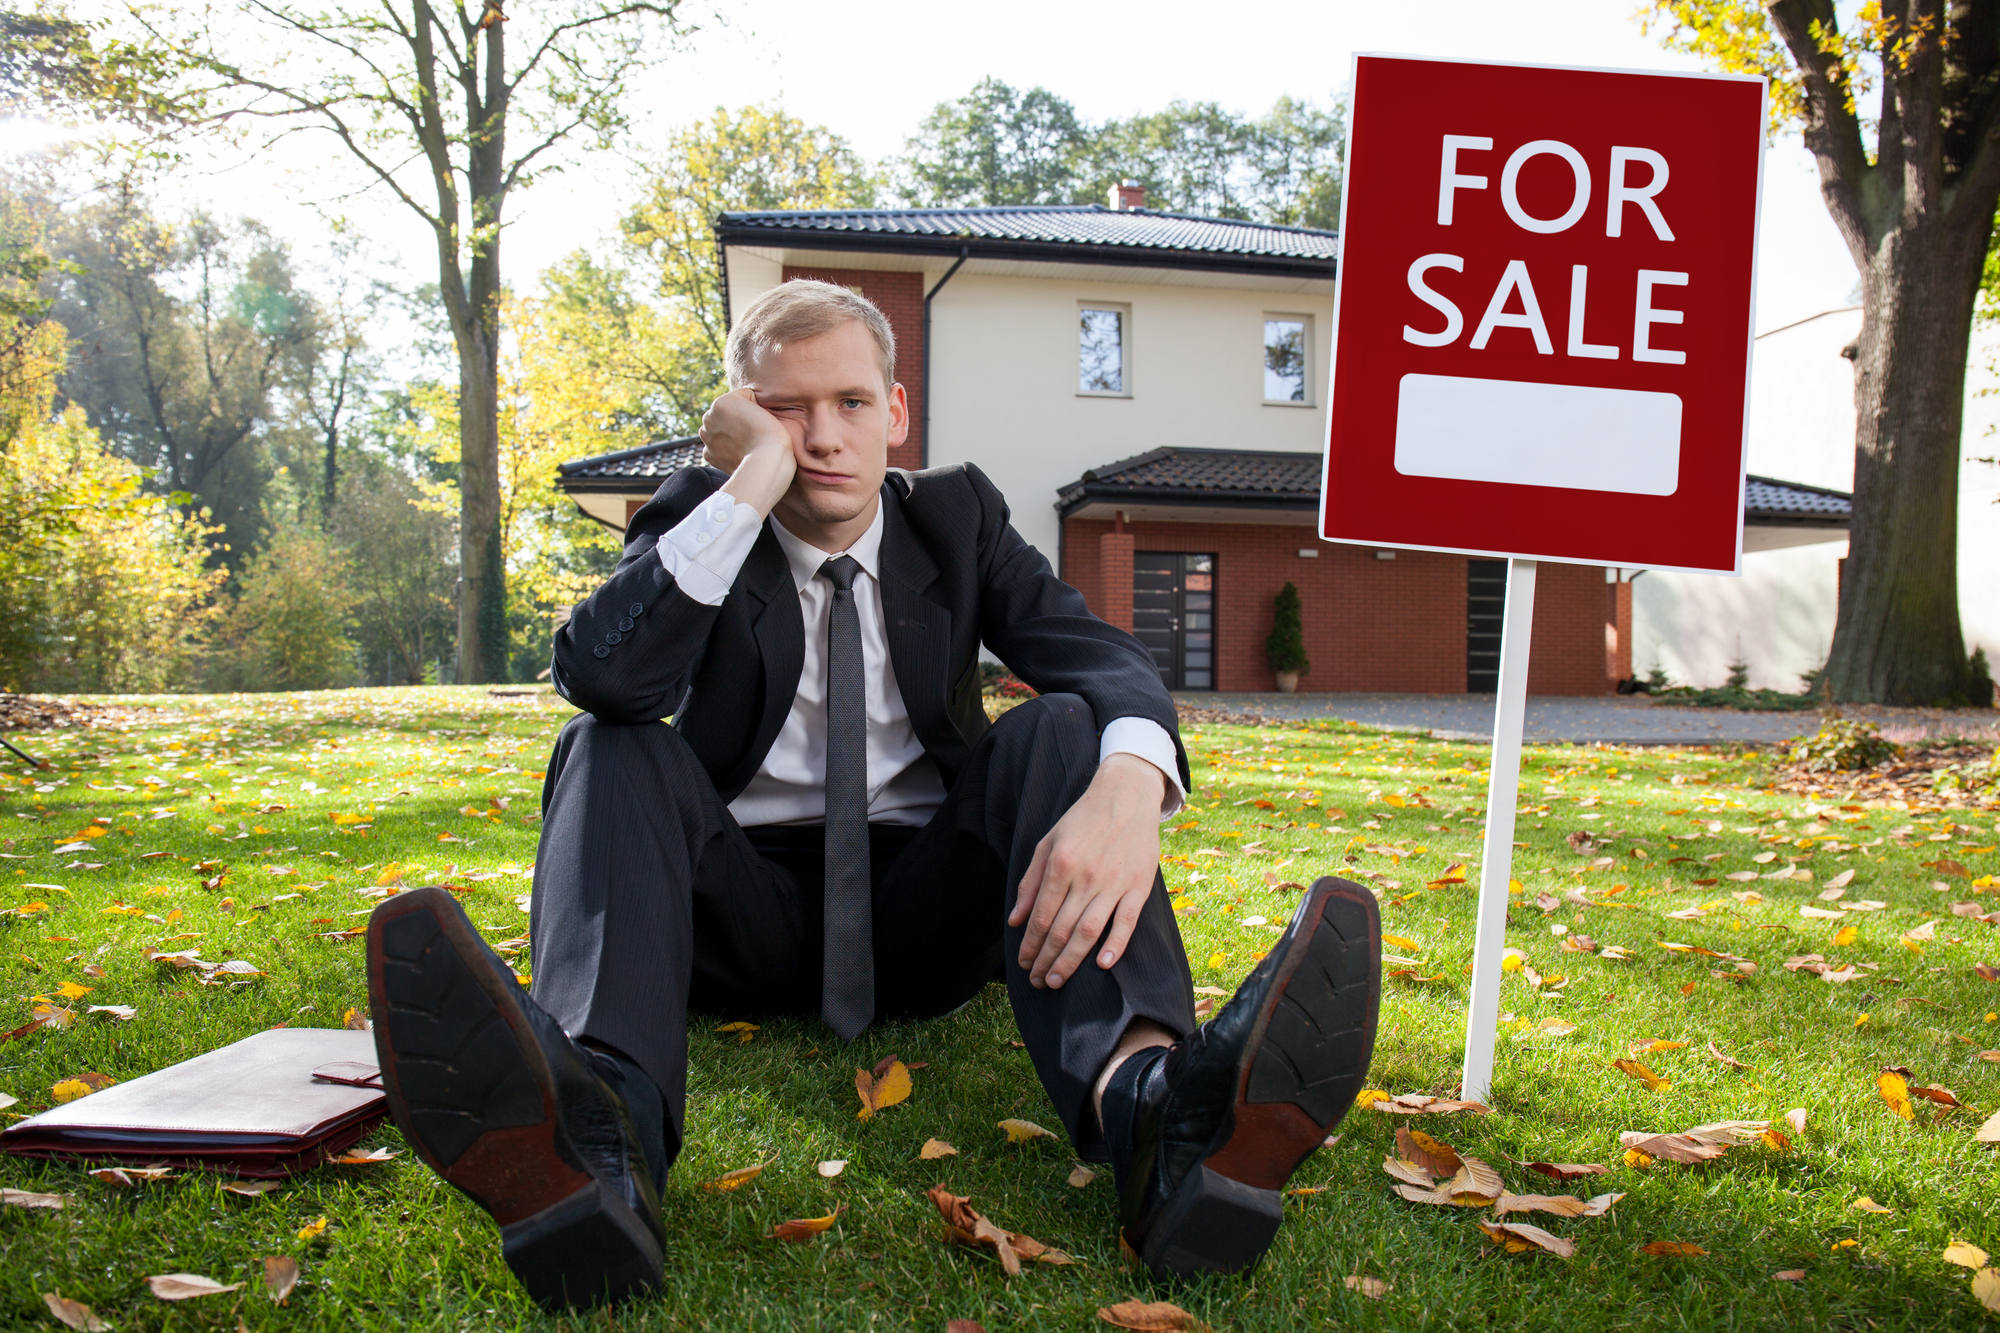 If You Have Real Estate for Sale in Detroit That Won't Move, Do This Image